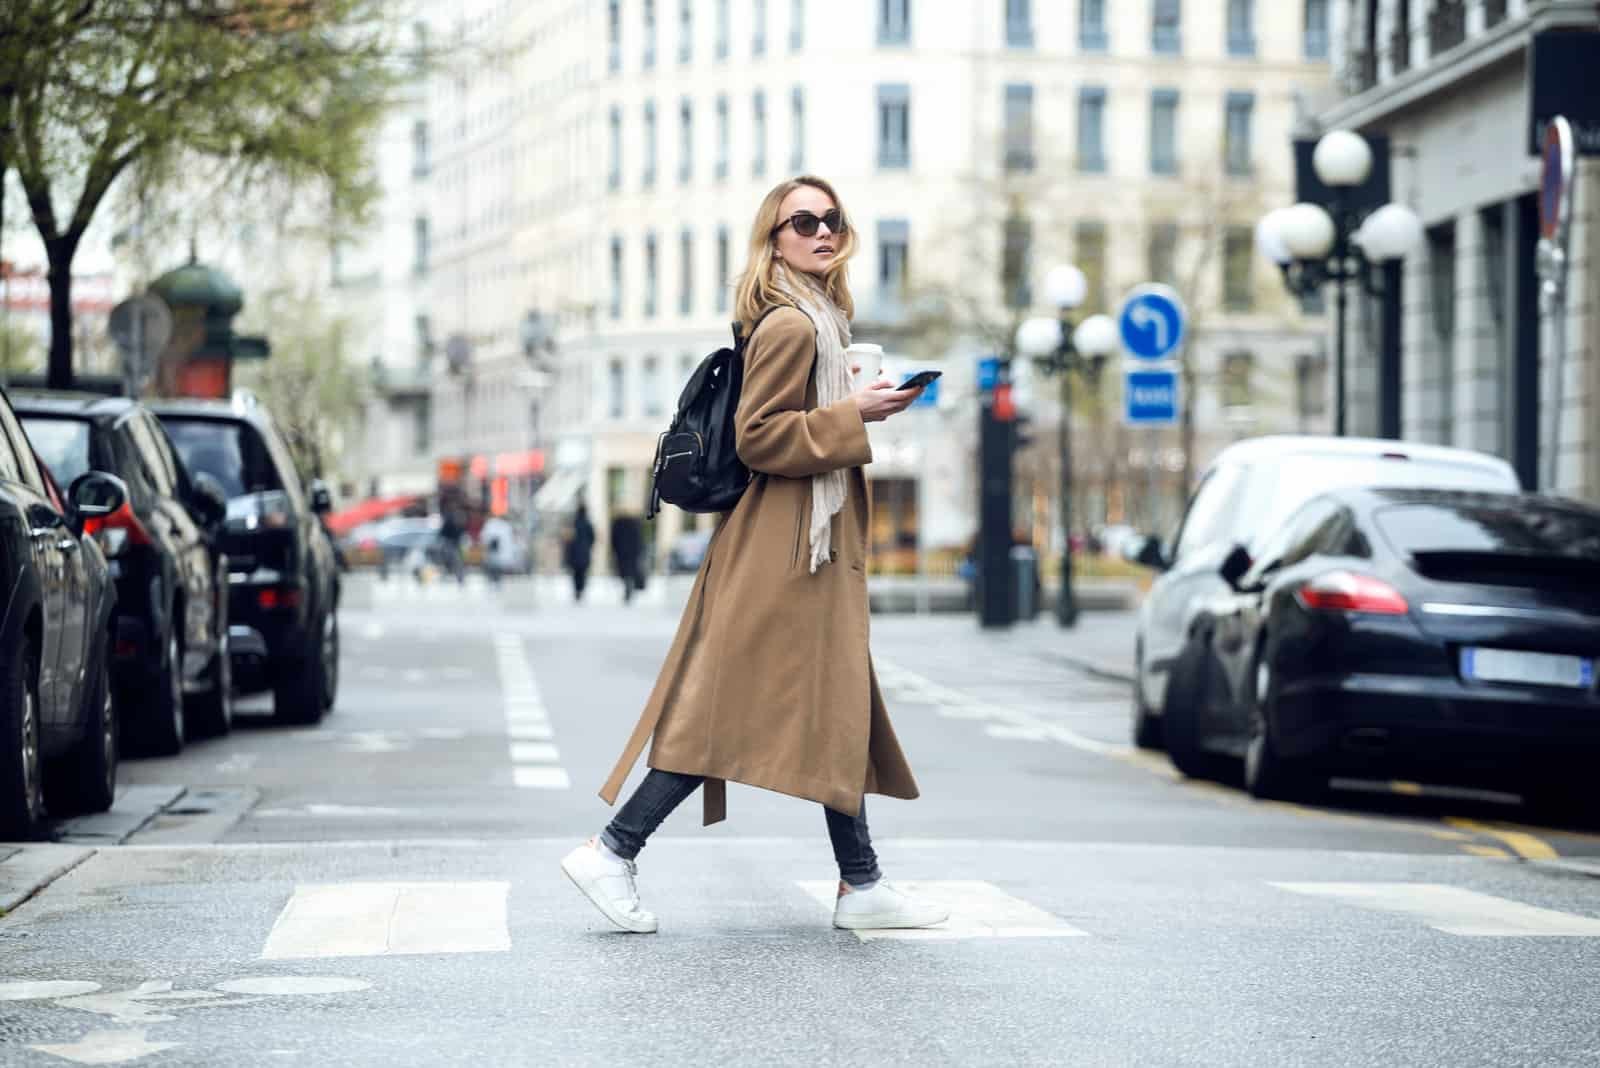 a woman in a brown coat walks down the street